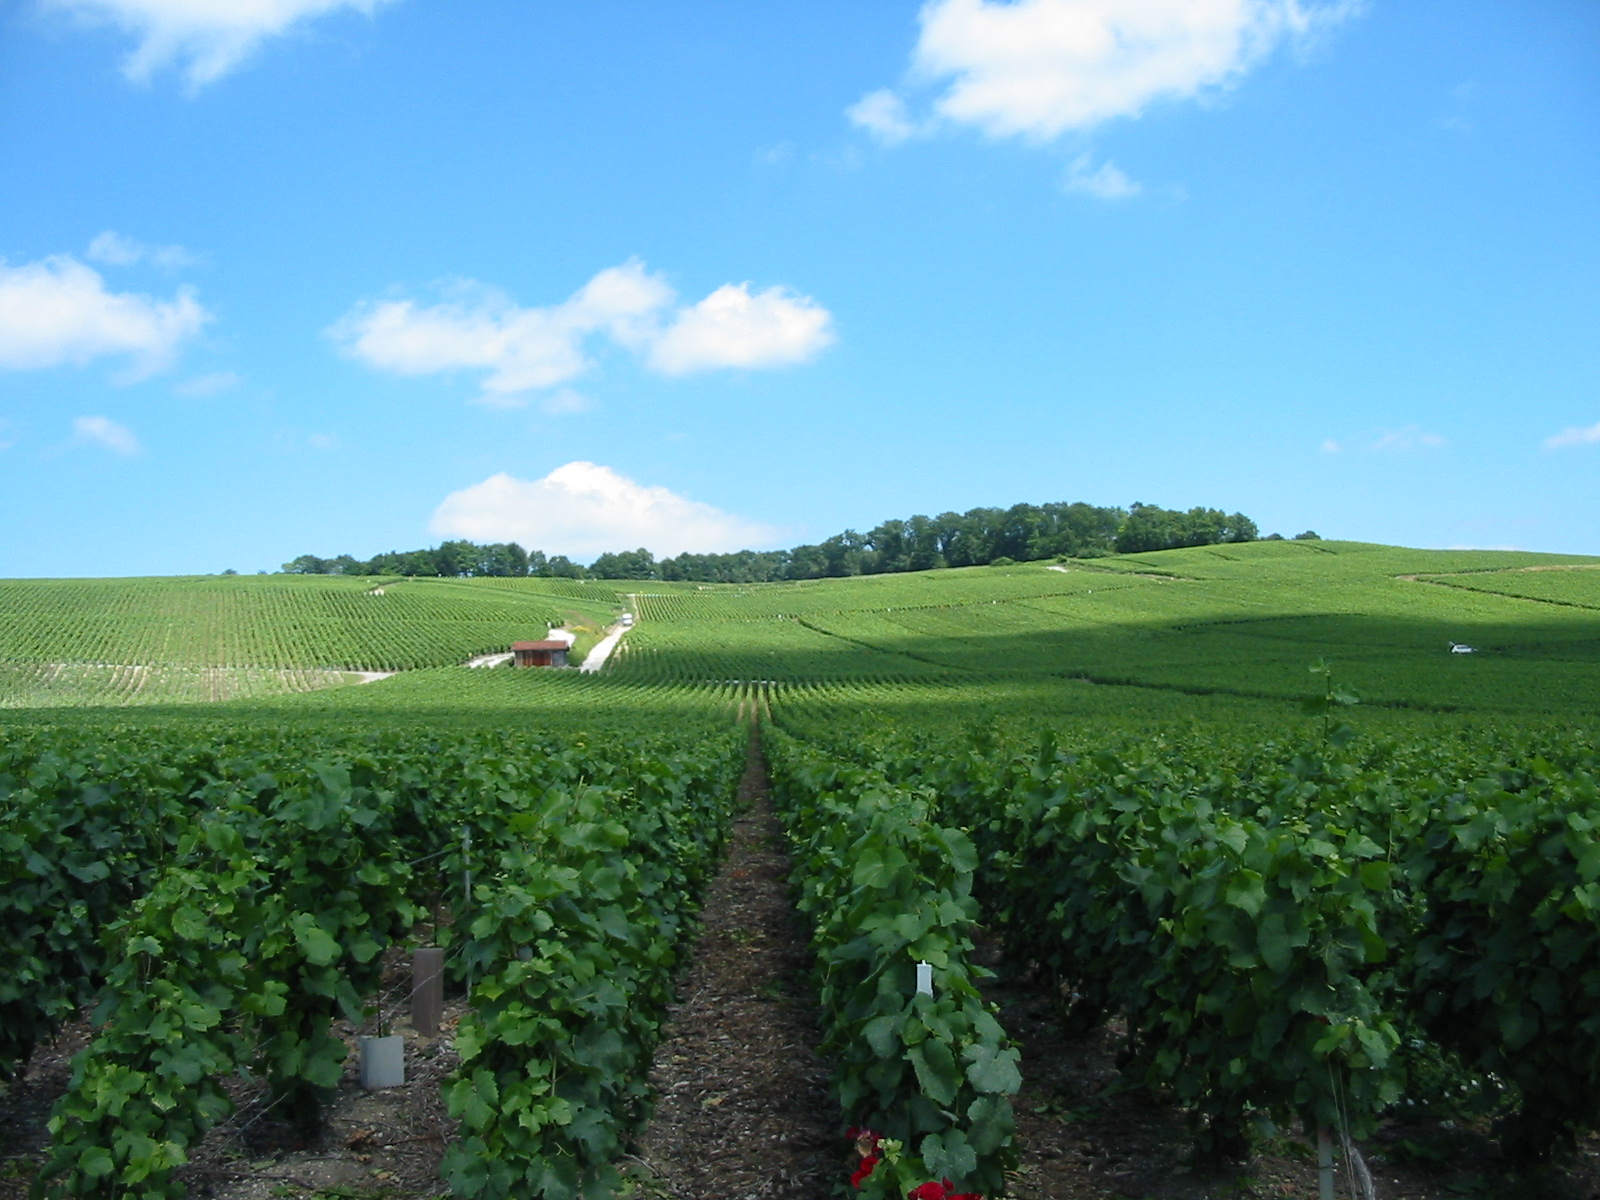 http://upload.wikimedia.org/wikipedia/commons/a/a8/Vineyards_near_Epernay.jpg